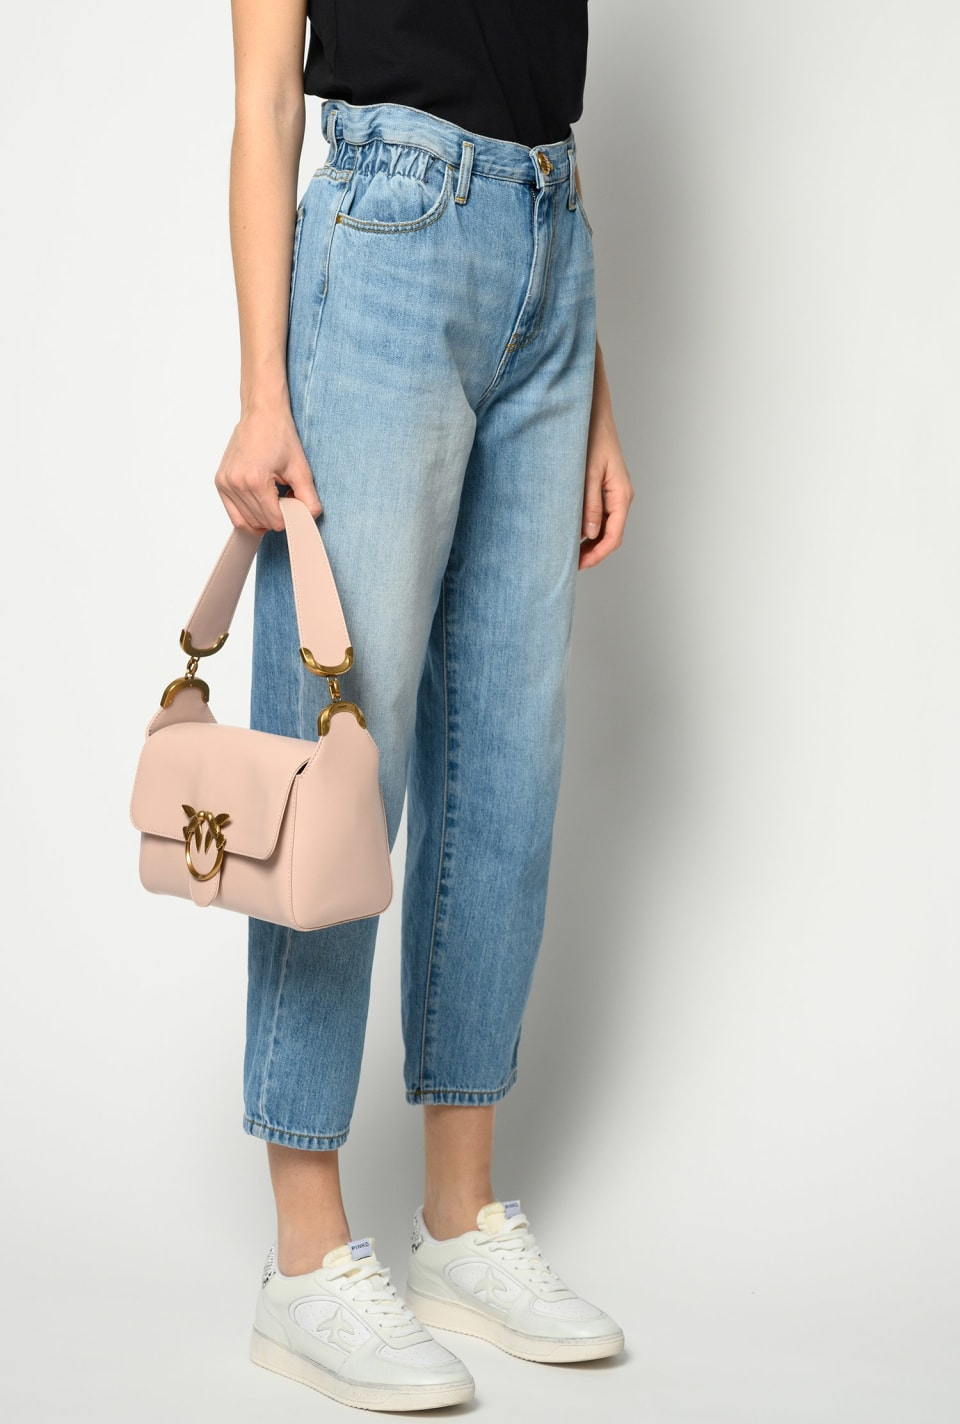 Shoulder Love Bag Simply - Pinko